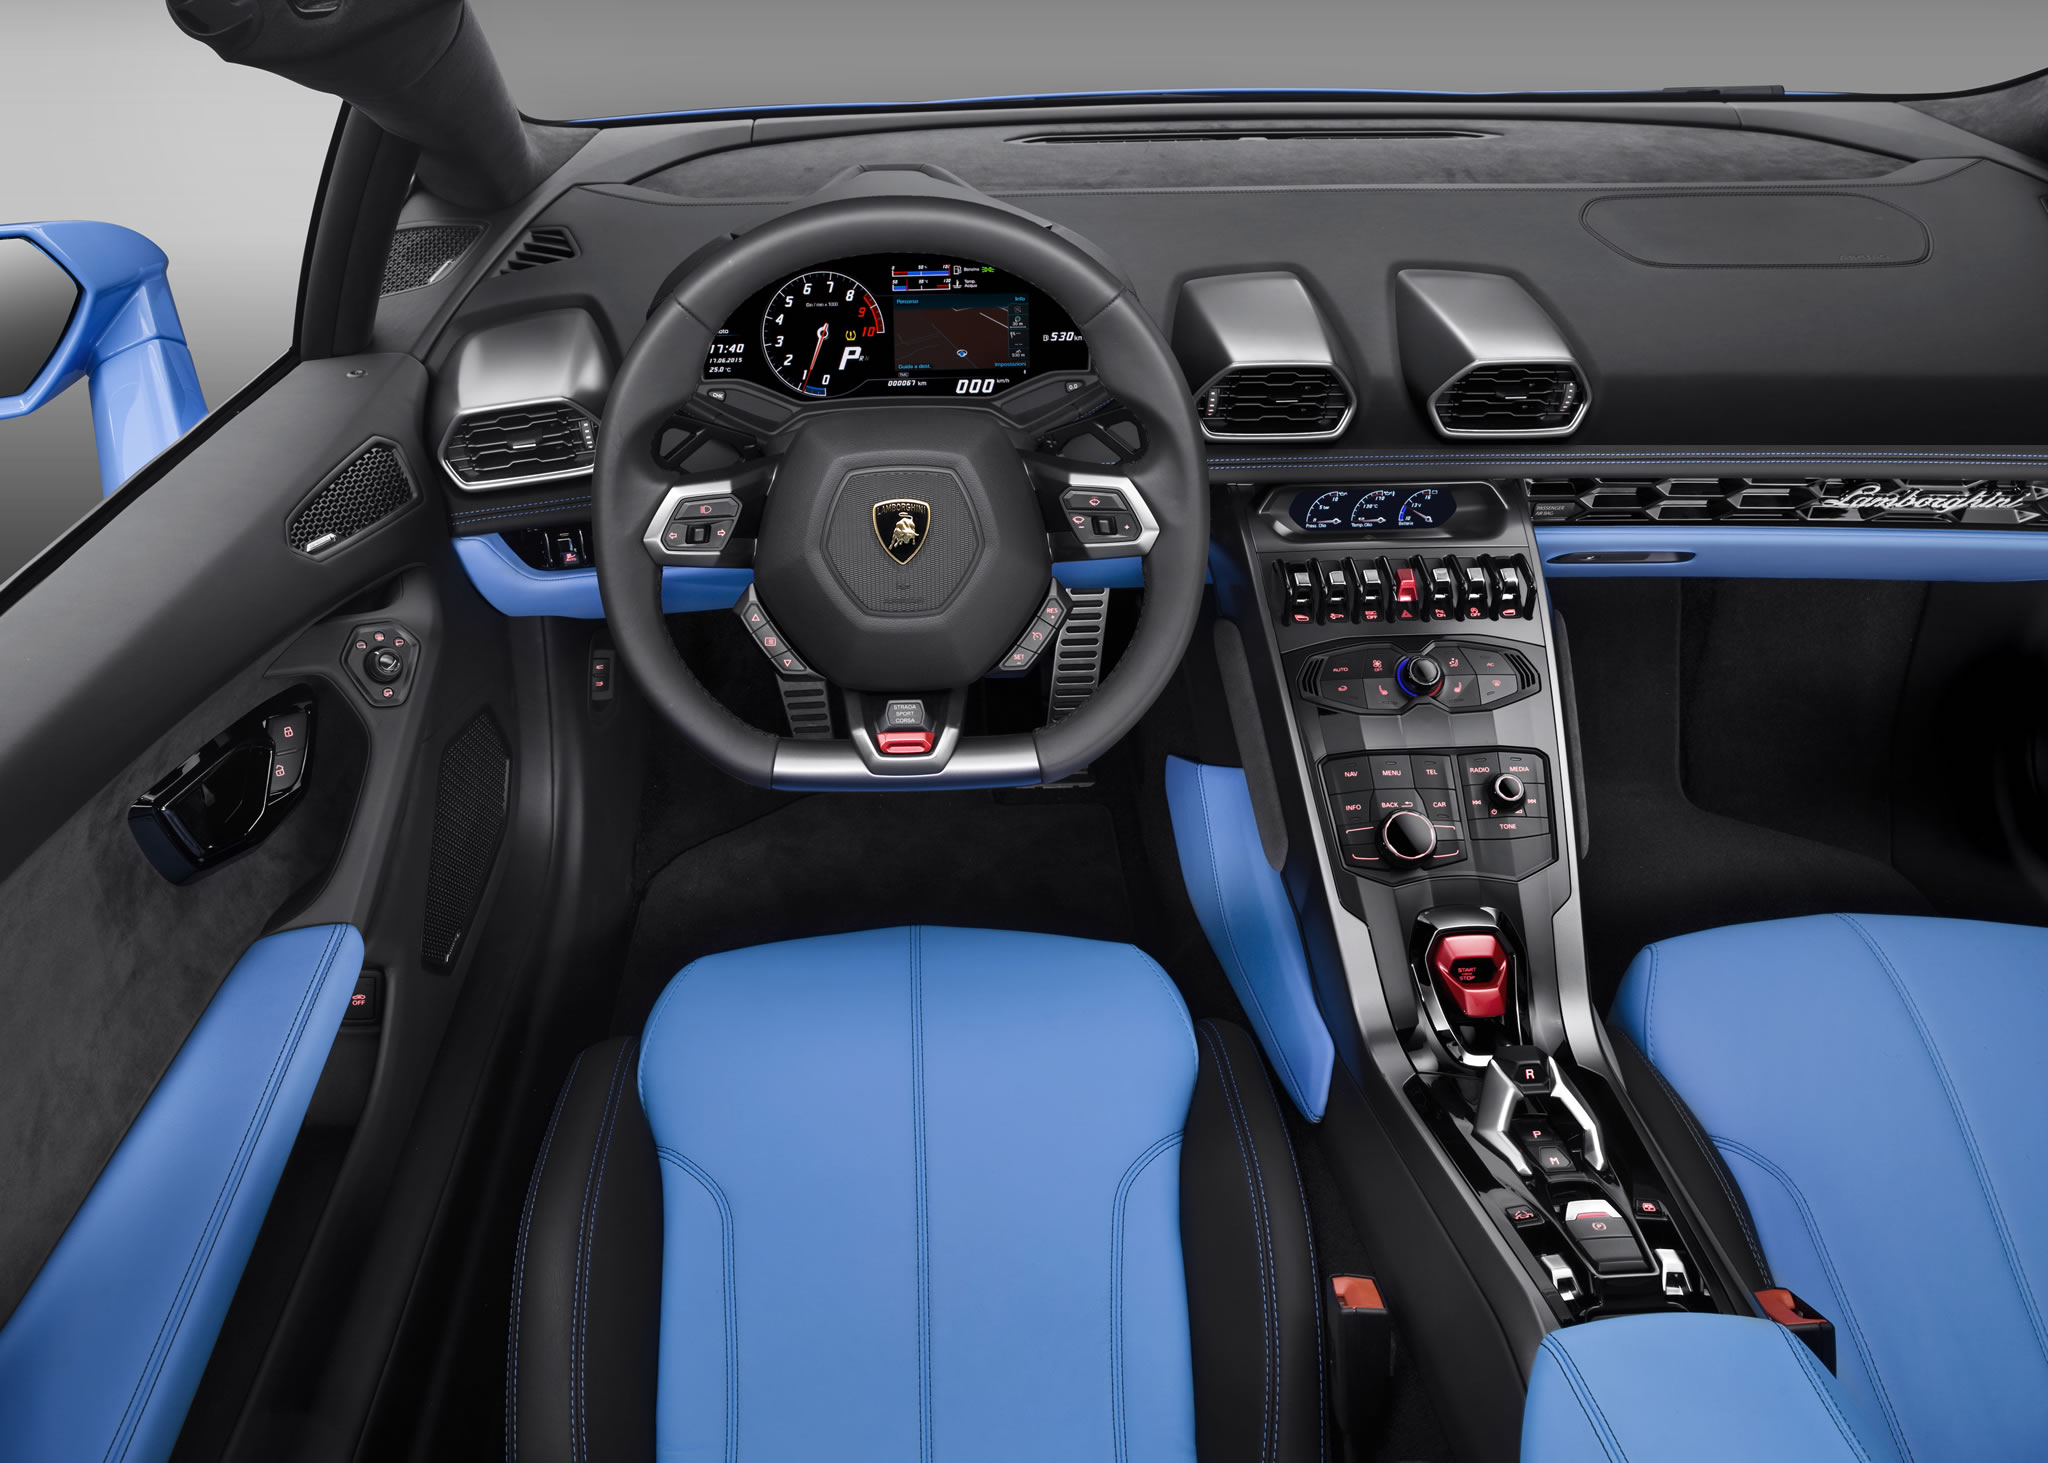 2016 Lamborghini Huracan Lp610 4 Spyder Interior Photo